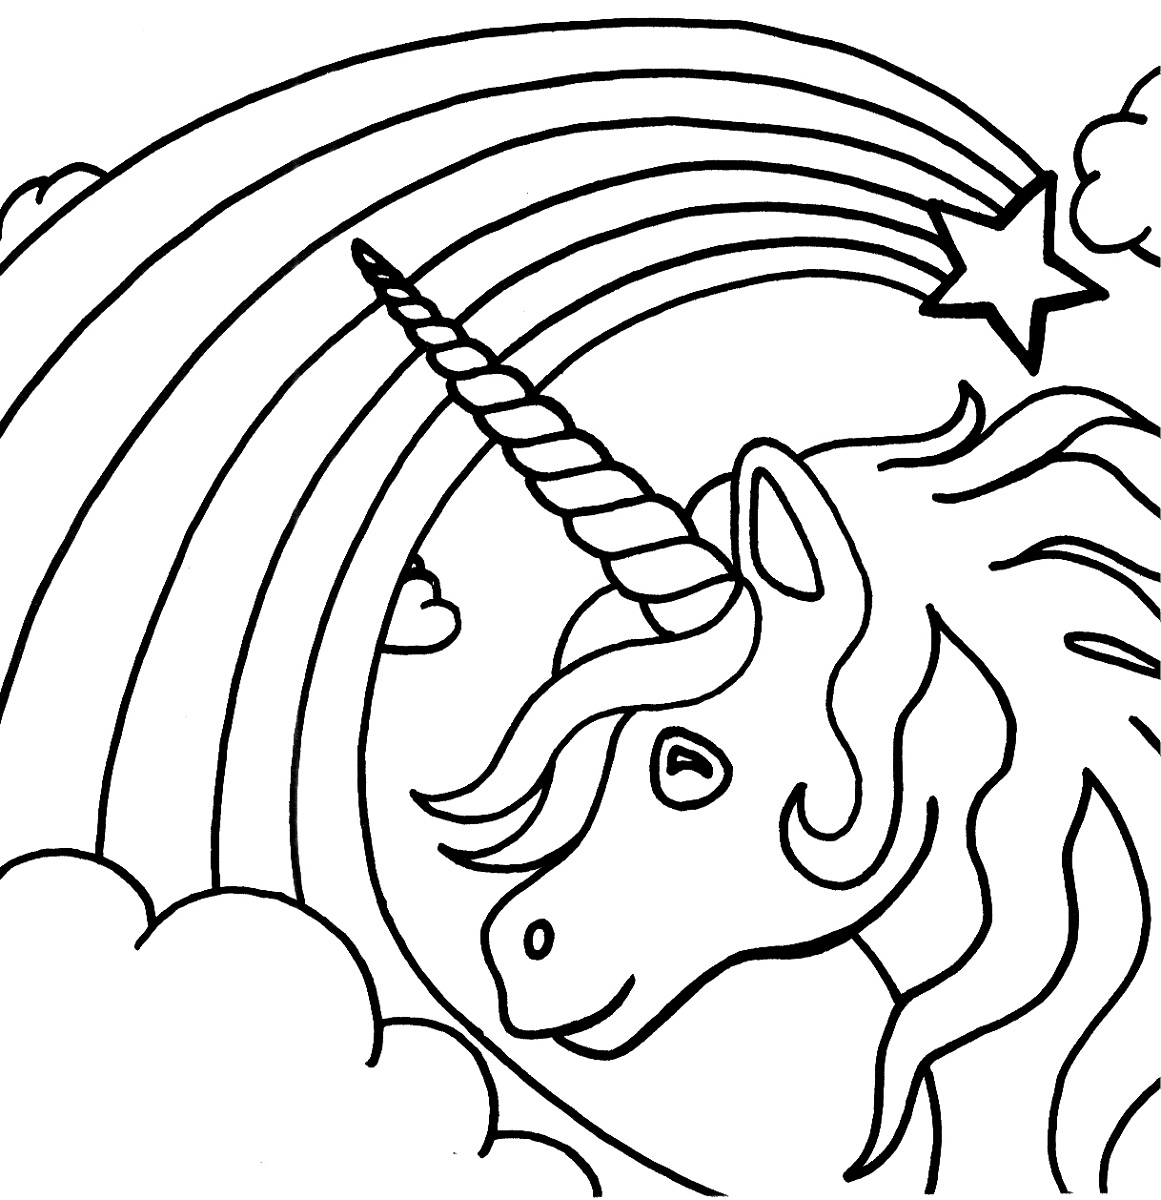 Hard Unicorn Coloring Pages At Getcolorings